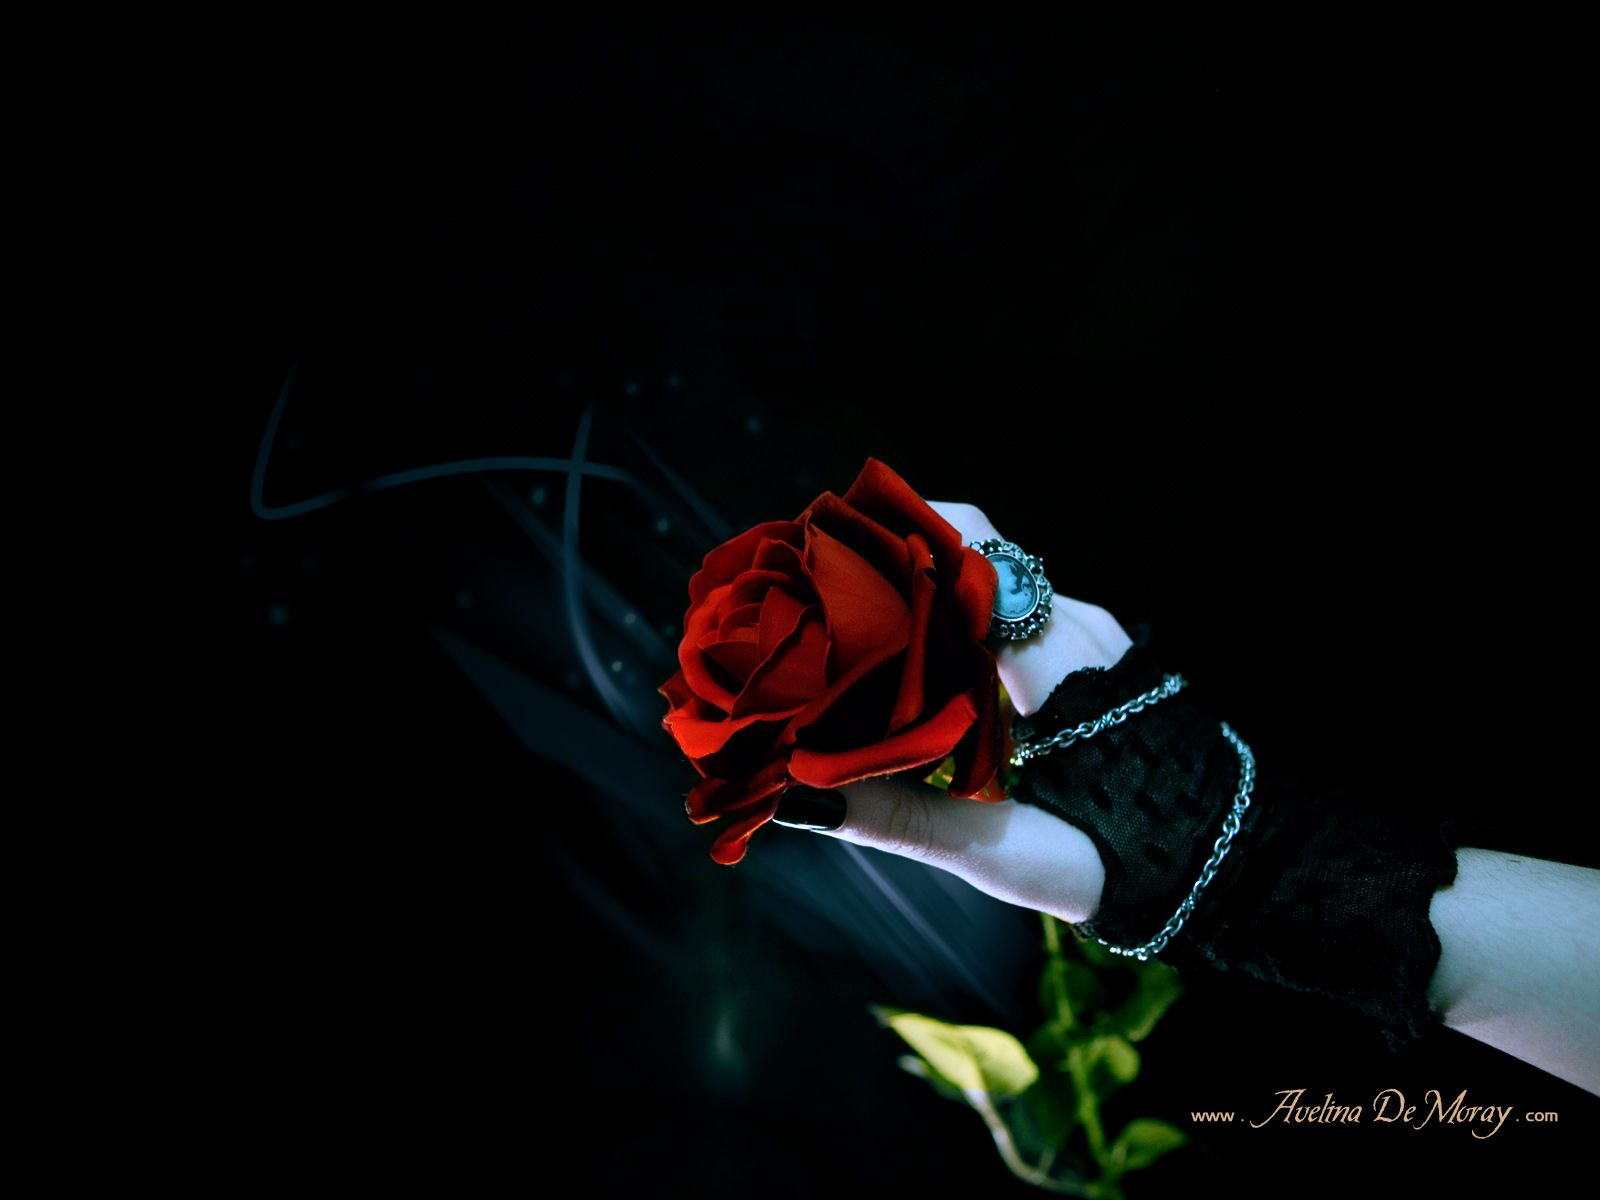 Gothic Rose Chain Design Glove Hand Holding Leaf Red Wallpapers Resolution Filesize KB Added On October